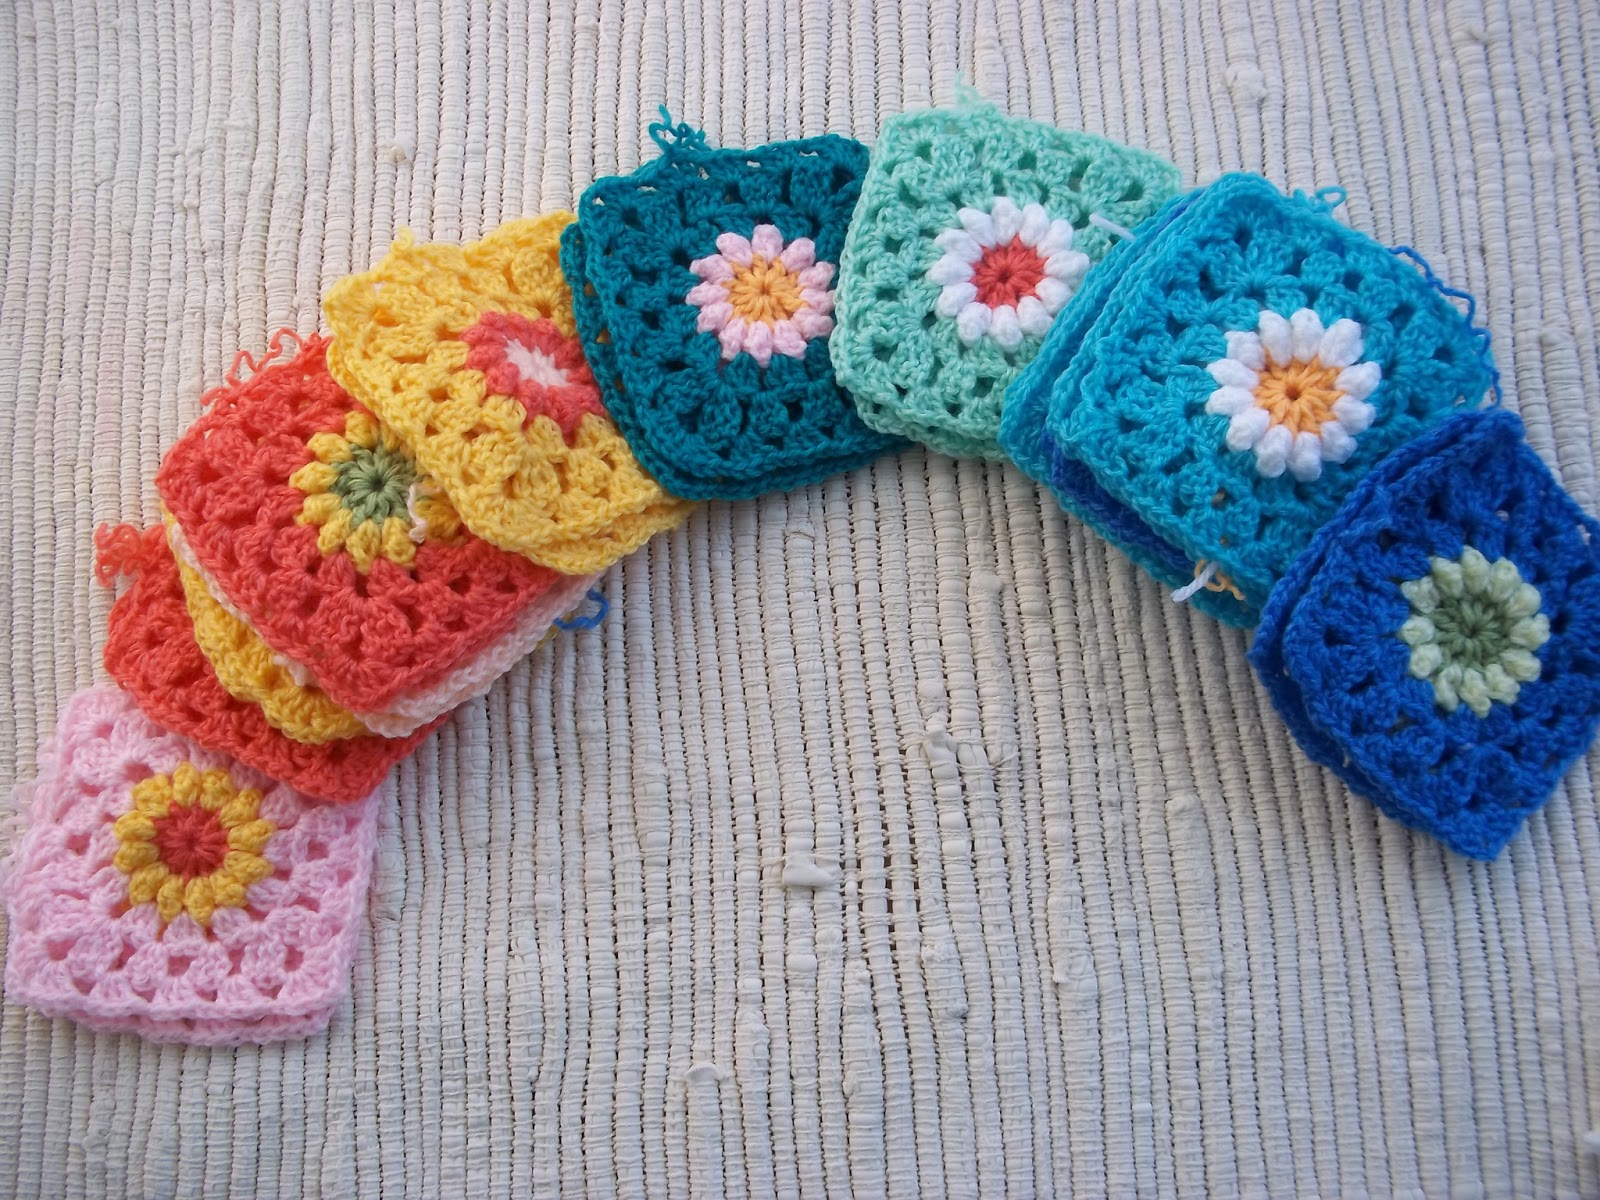 Zooty Owl\'s Crafty Blog: Daisy Granny Square Afghan - Scrapbuster ...